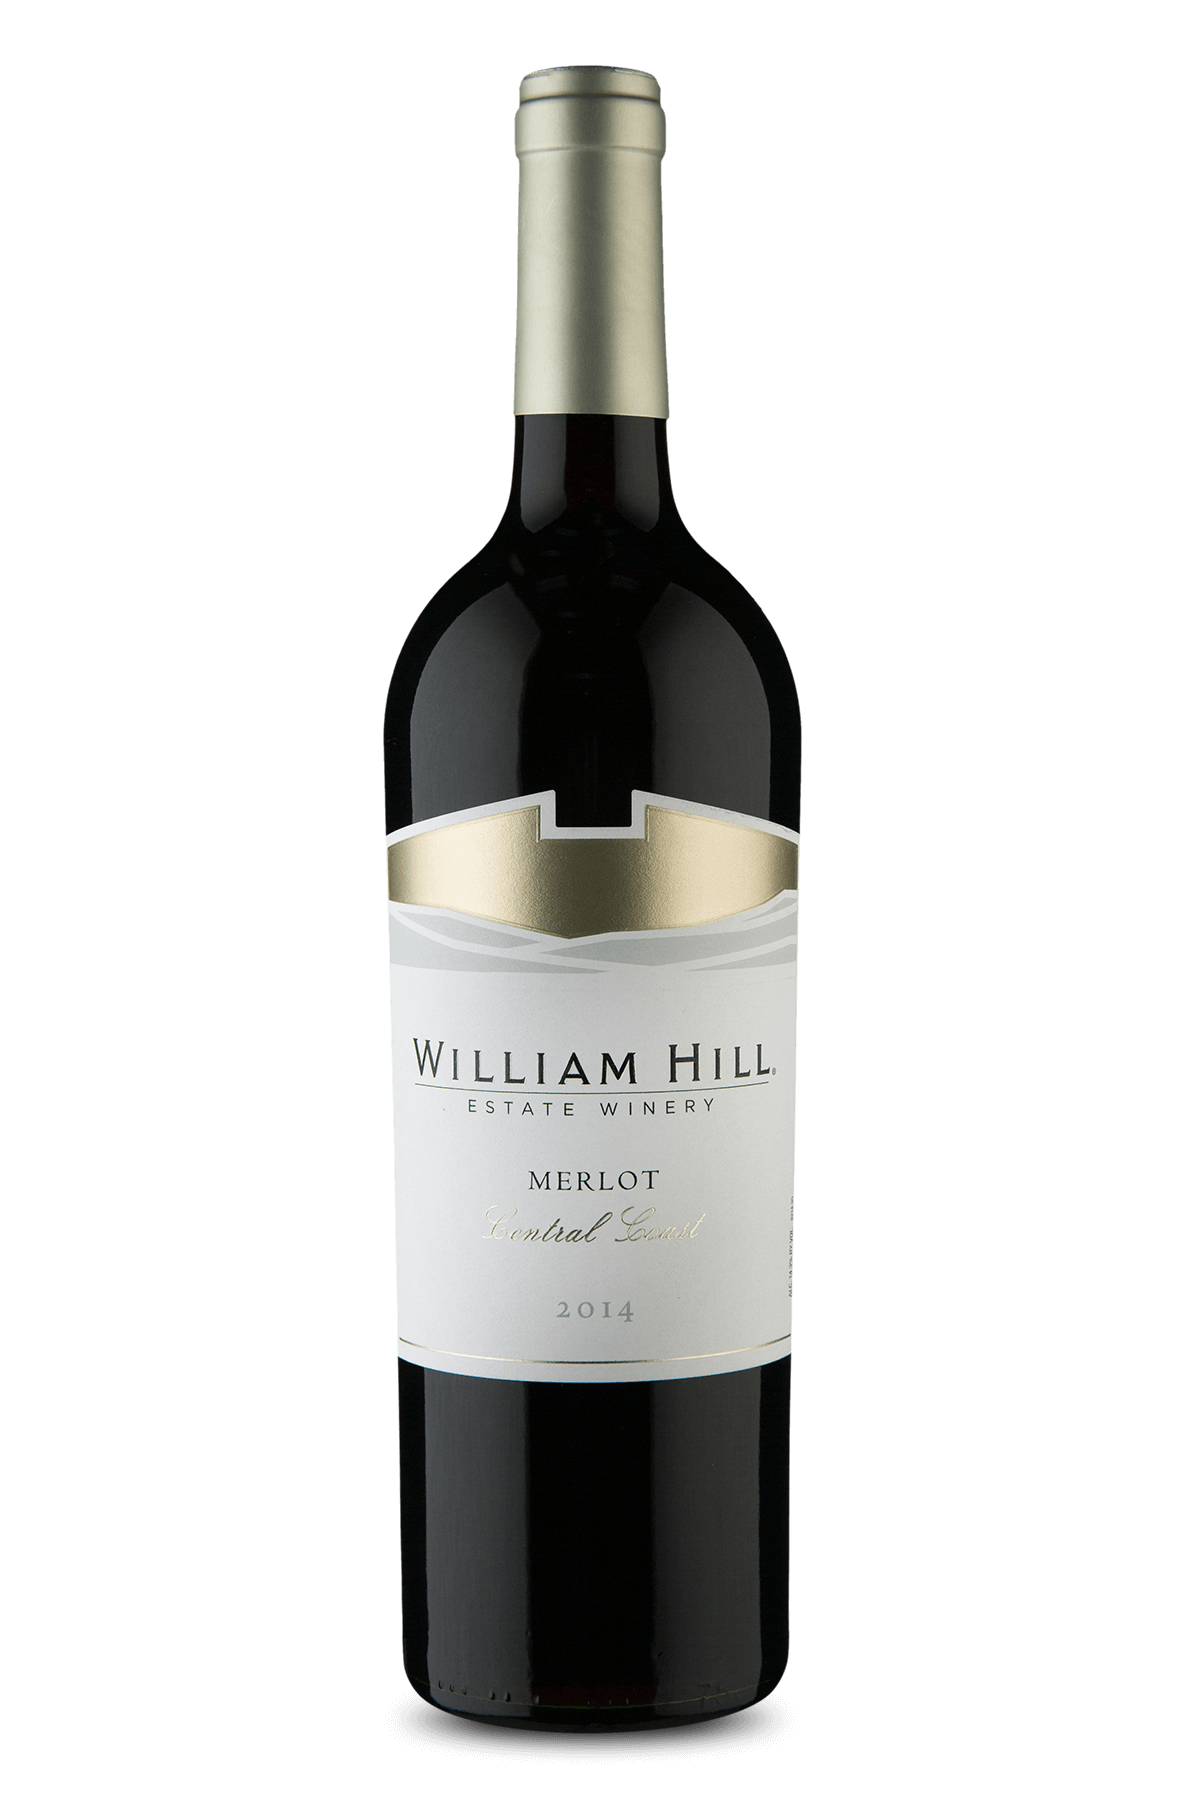 William Hill Central Coast Merlot 2014